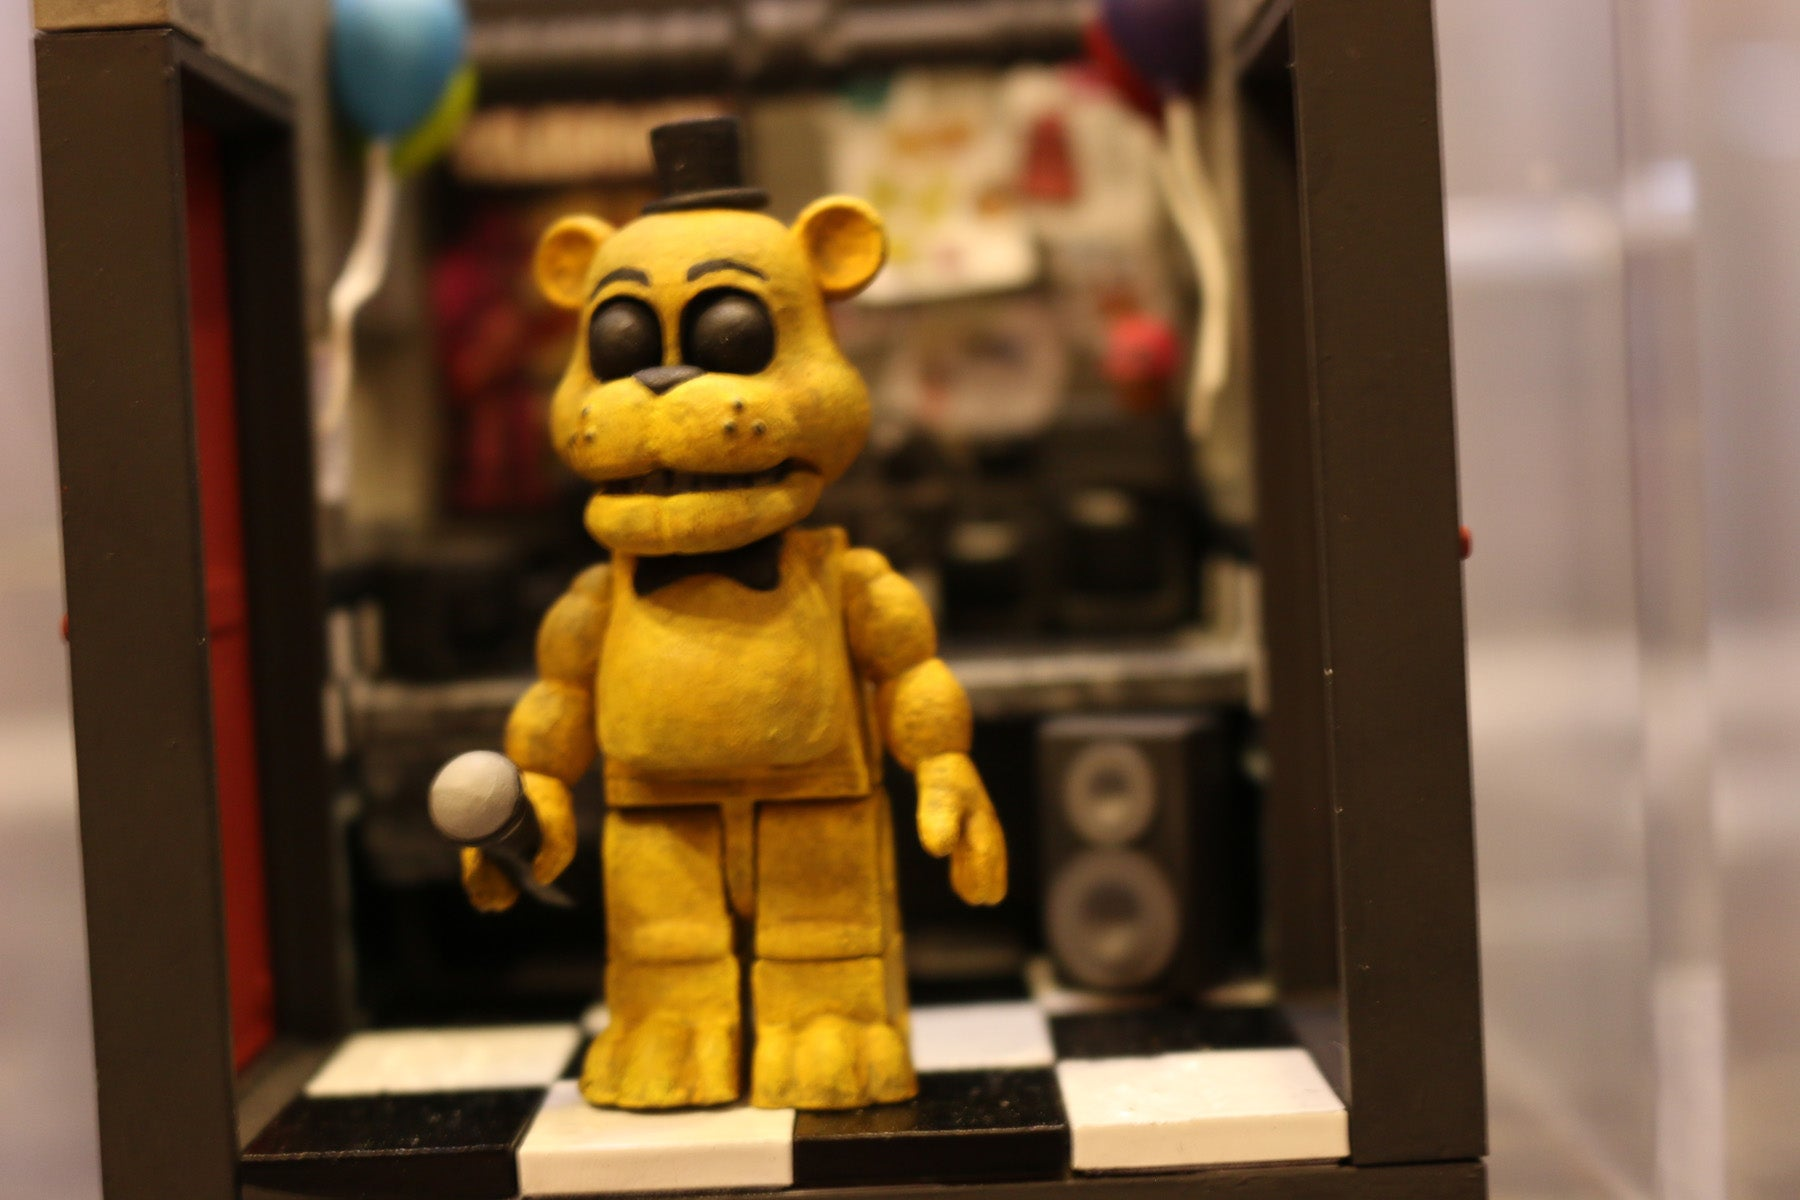 Five Nights At Freddy's Build-A-Horrible-Animatronic-Bear Sets Even Creepier In Person